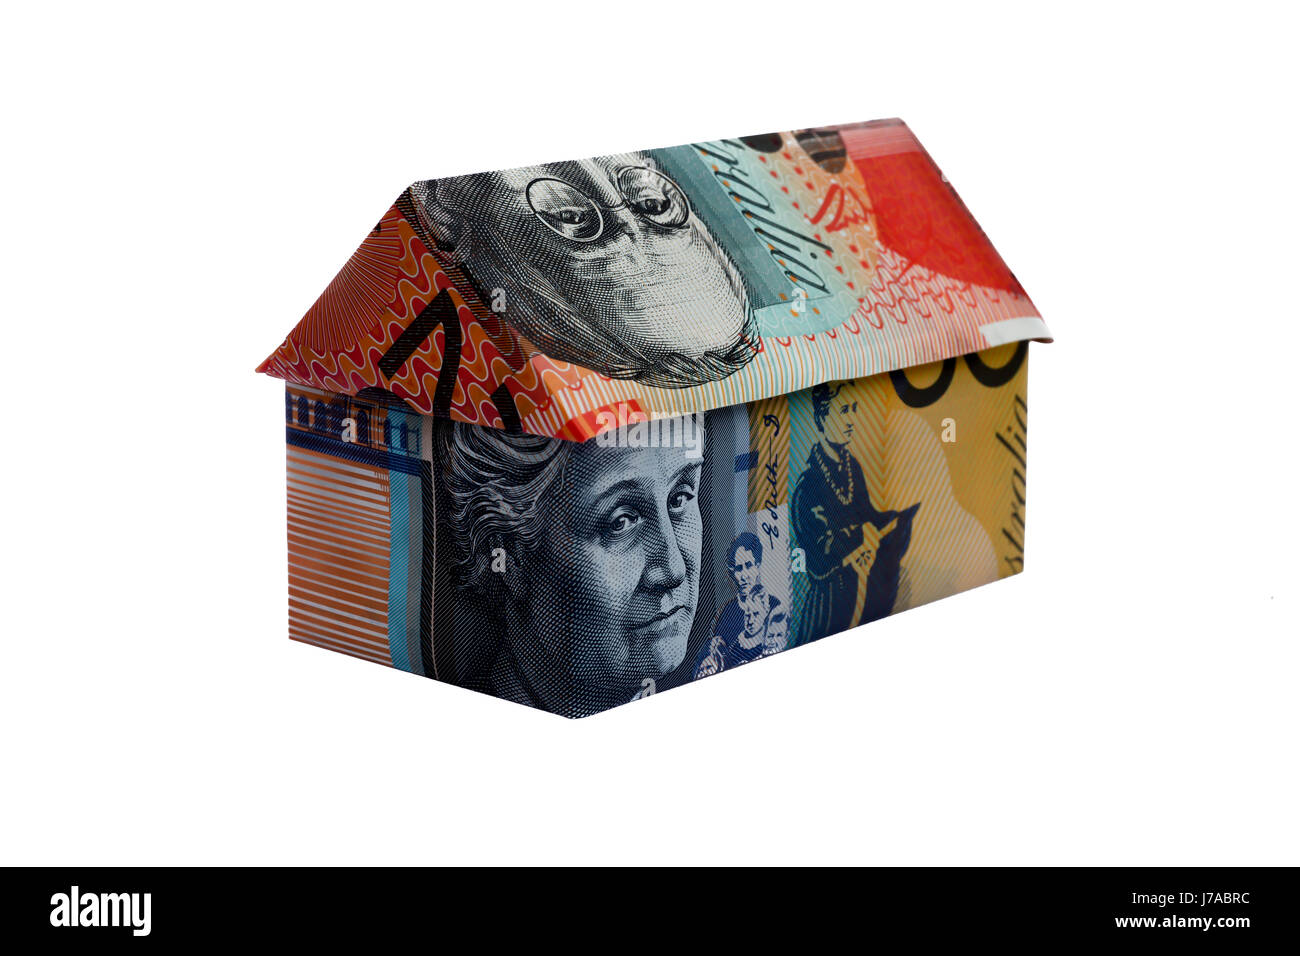 Origami house made with Australian Notes - Stock Image